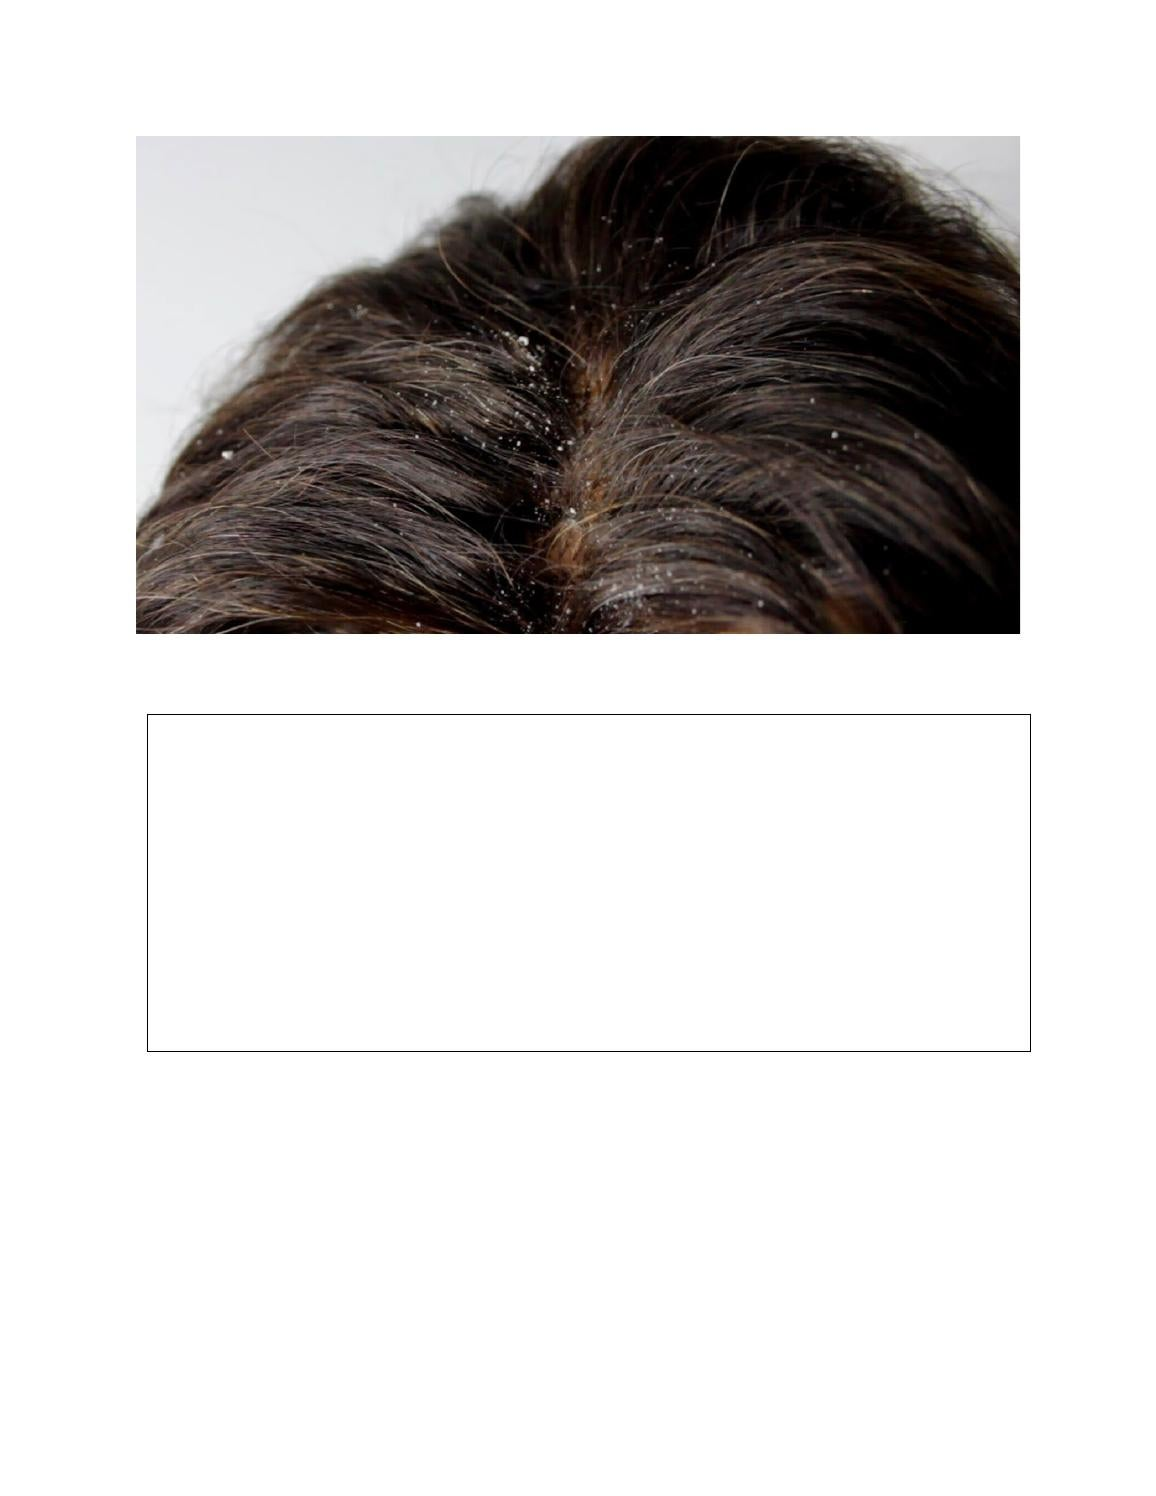 How To Get Rid Of Dandruff And Dry Scalp Naturally